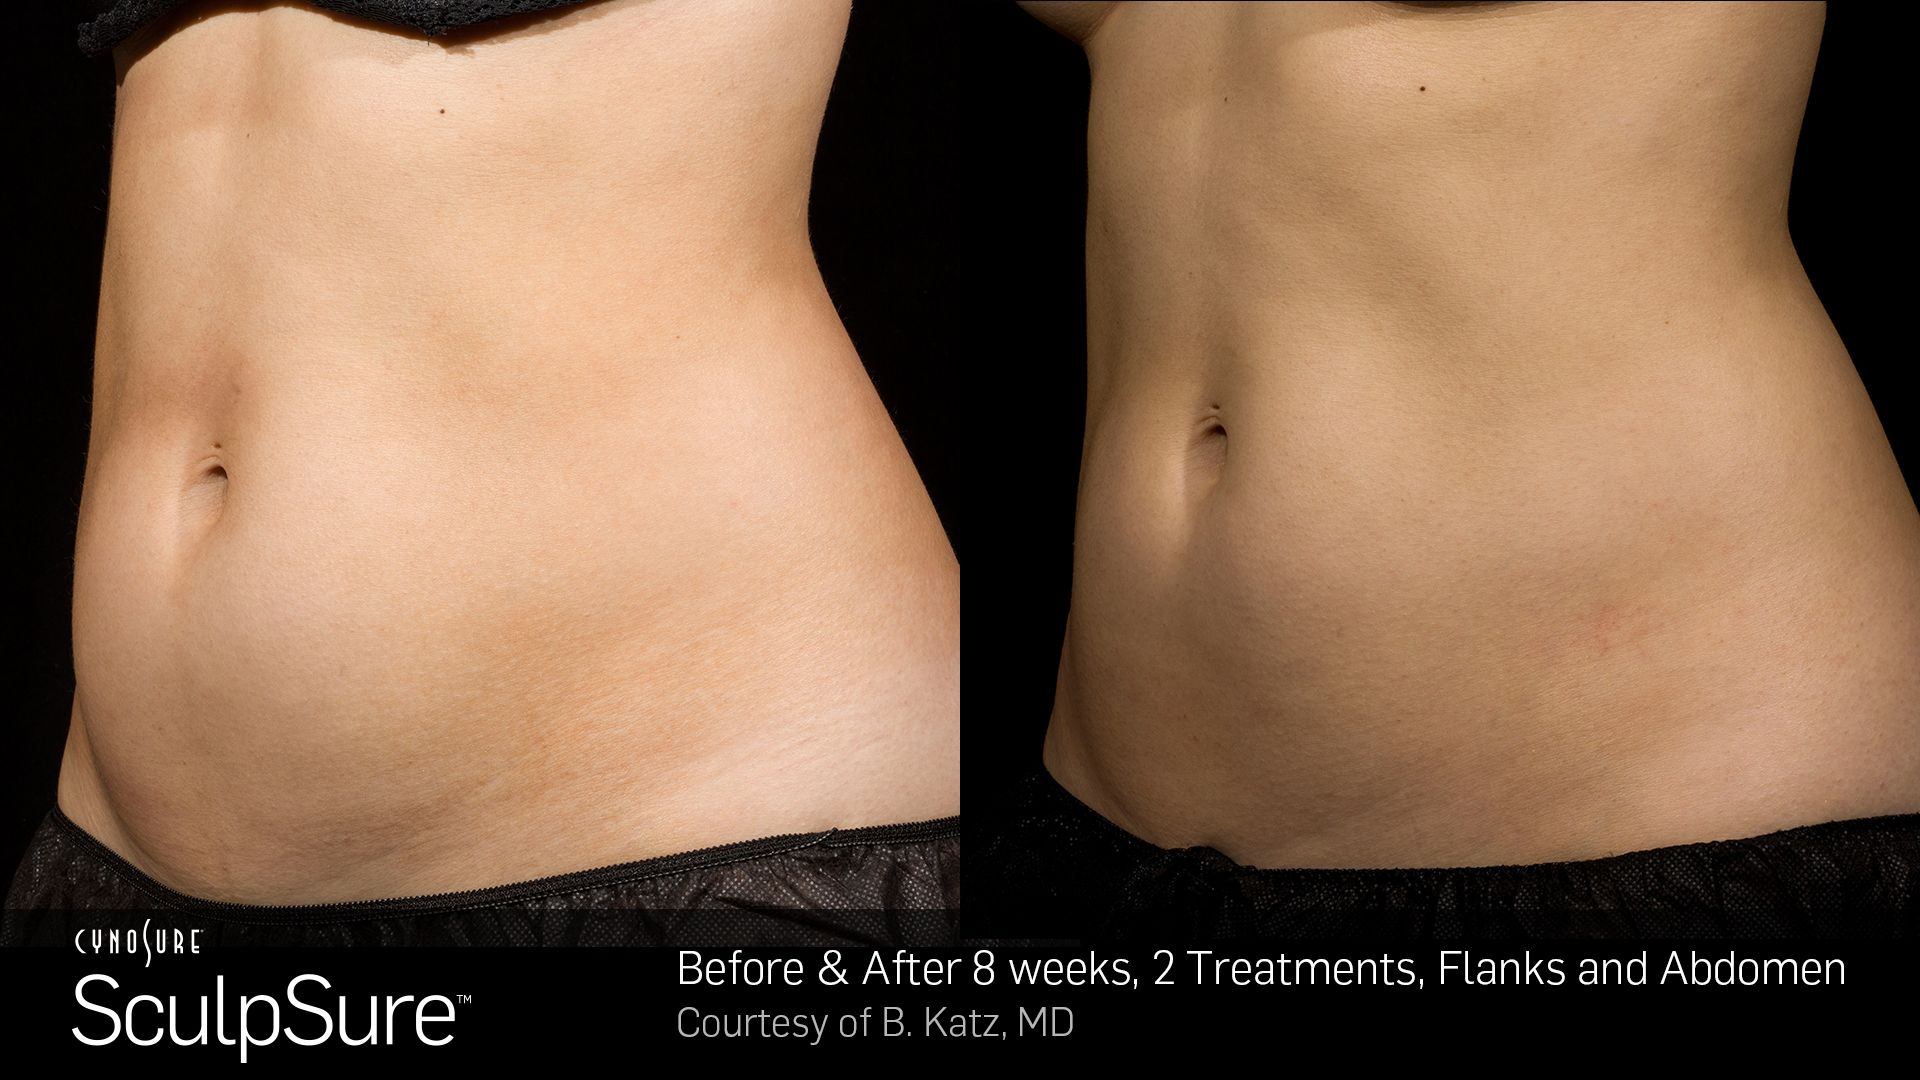 Before and After Photos 8 weeks, 2 Treatment,flanks abdomen (female patient 4, side view)